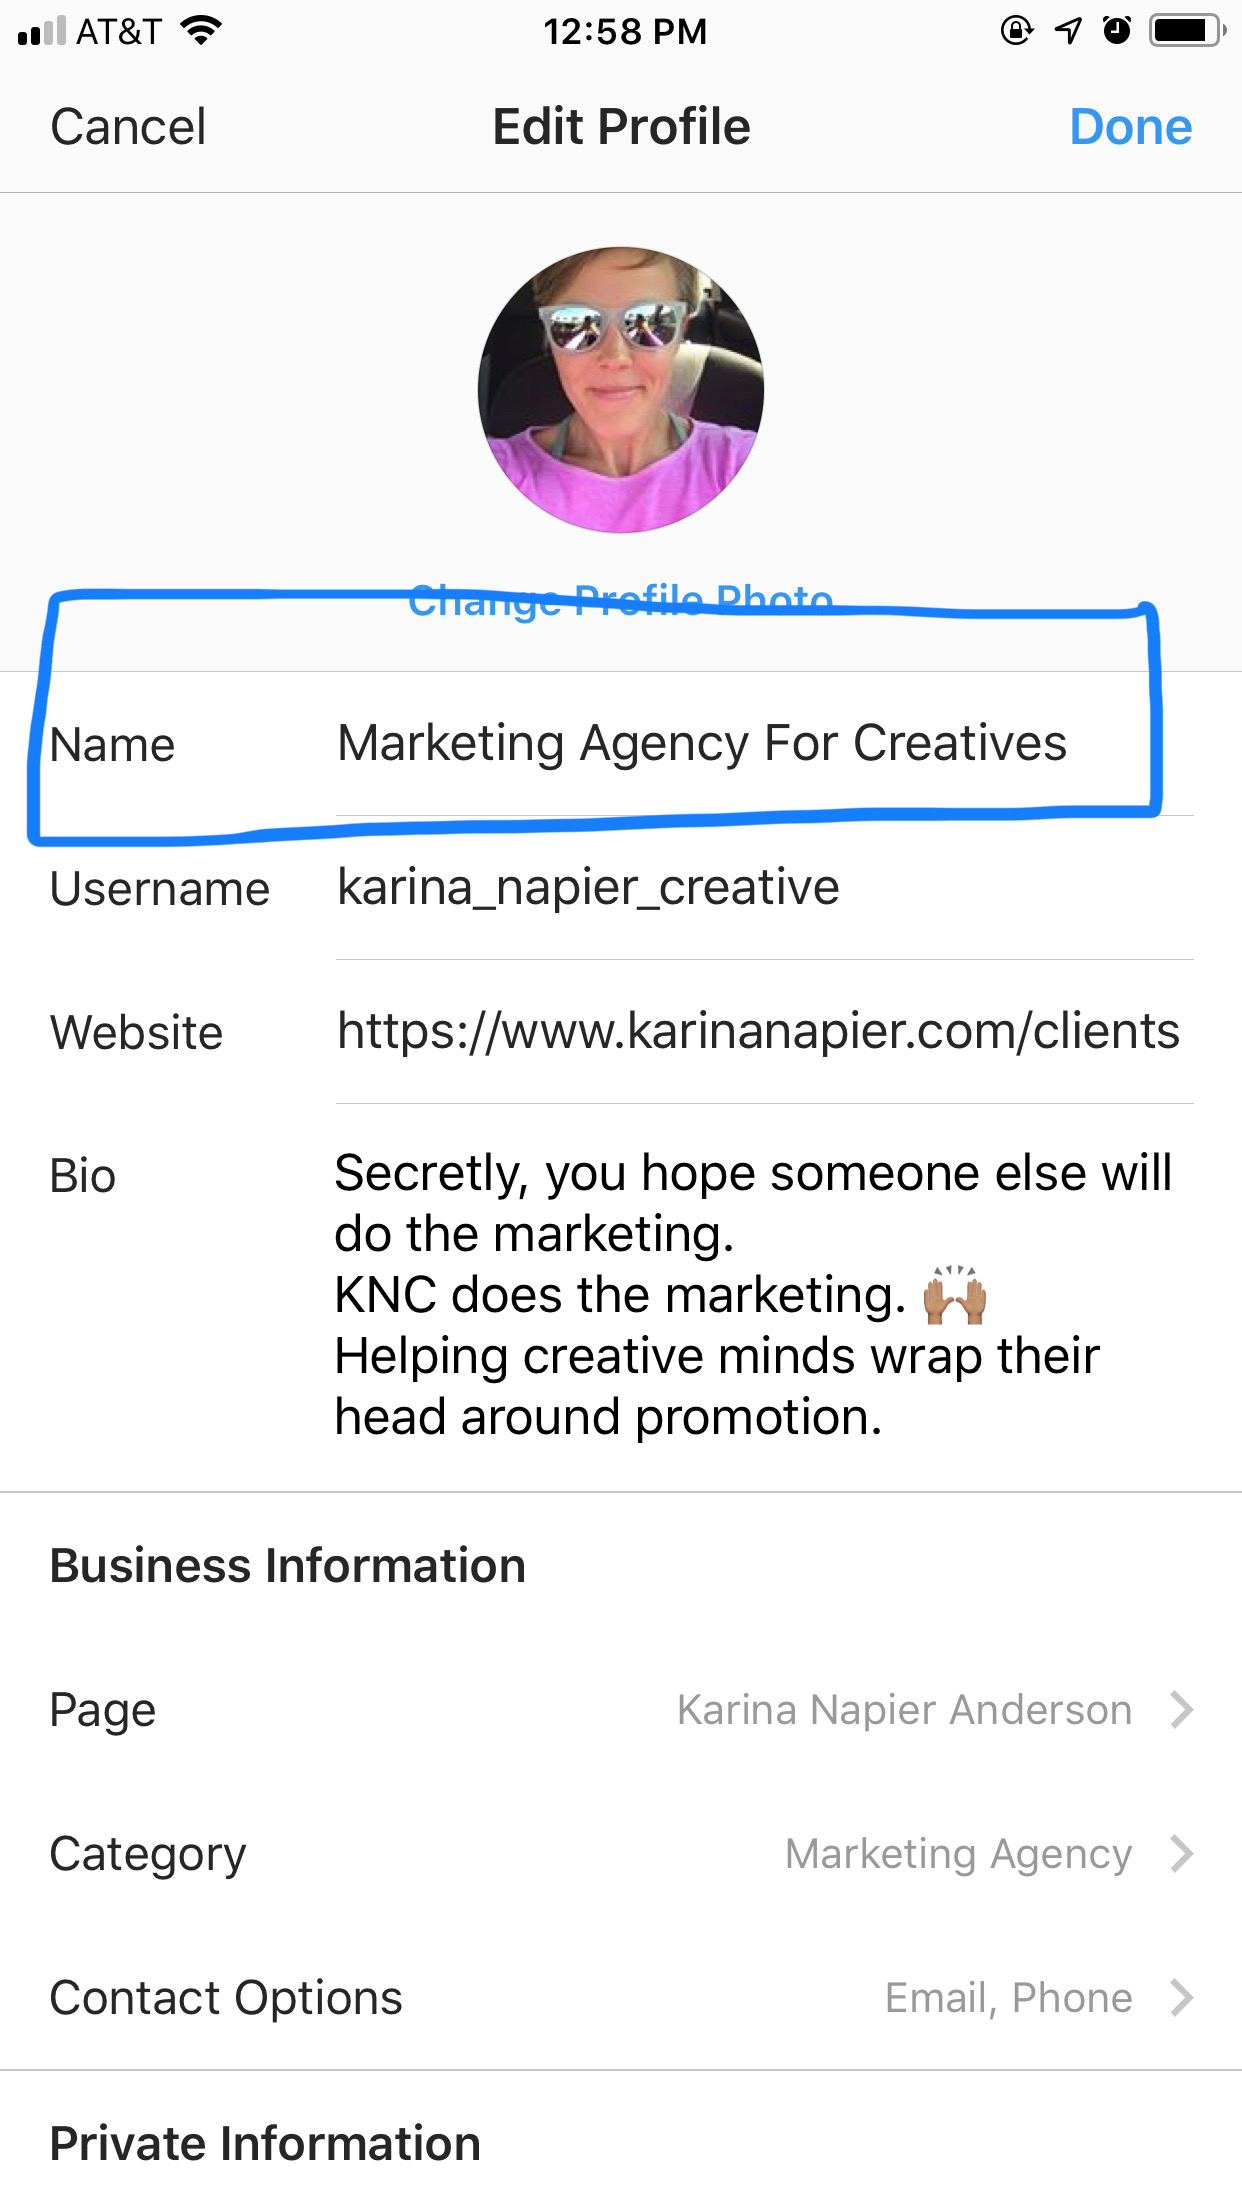 karina-napier-marketing-agency-advertising-social-media-insights-portland-maine.JPG